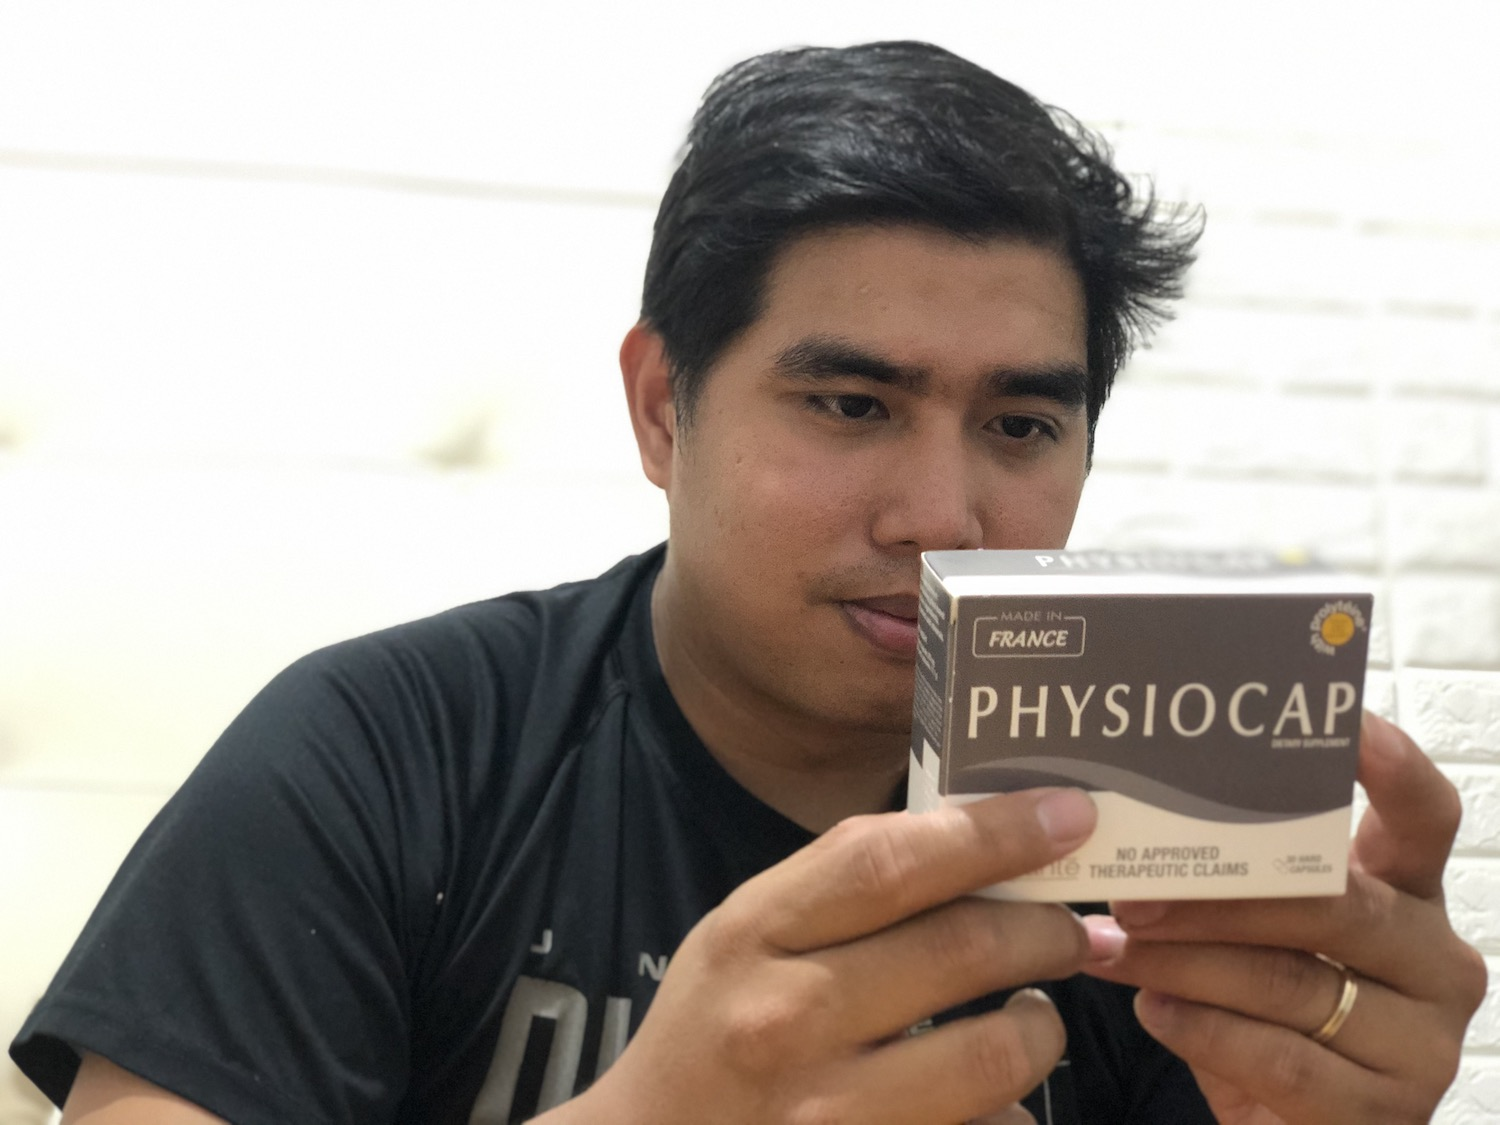 Physiocap: Anti-Hairloss System for Men and Women